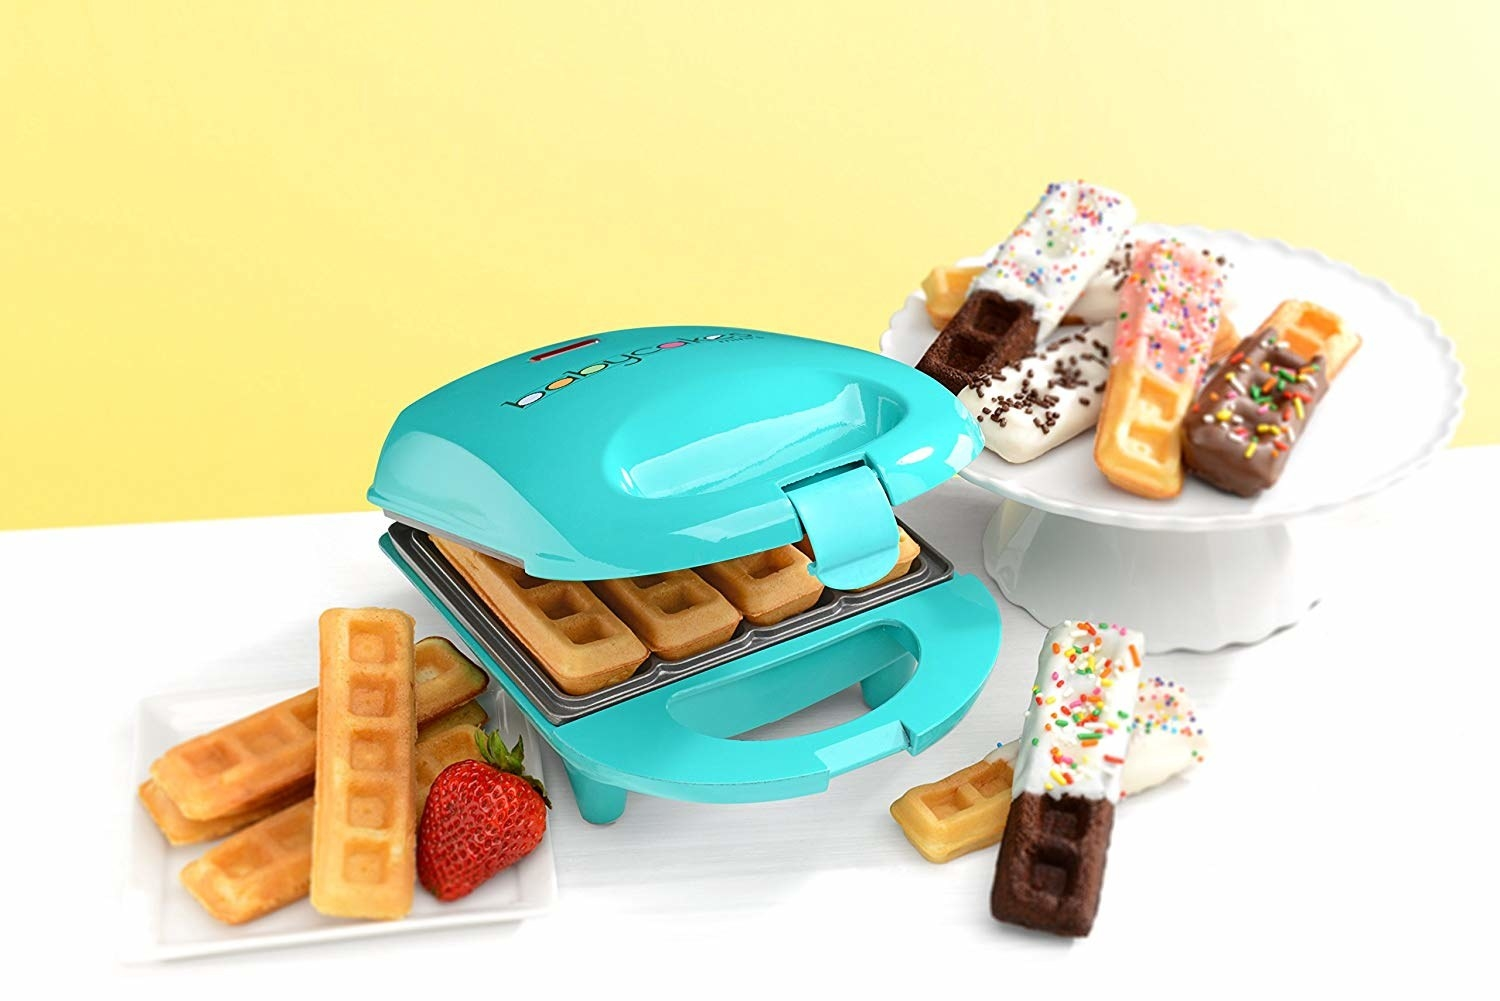 device that makes four waffle sticks at once